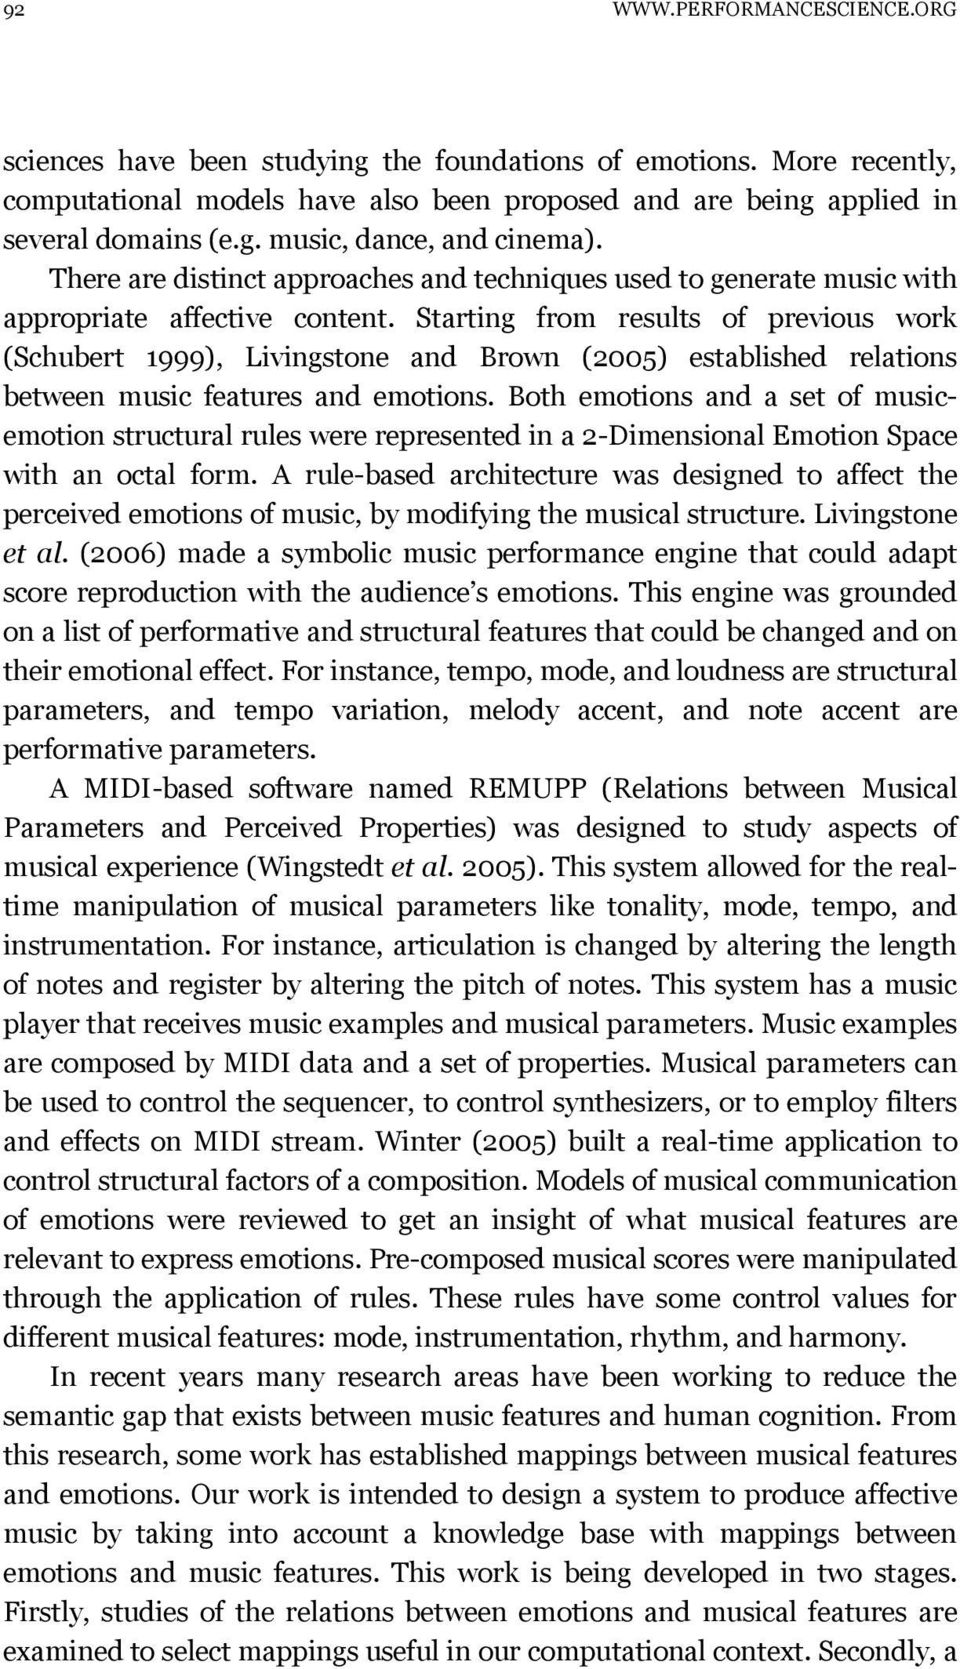 Starting from results of previous work (Schubert 1999), Livingstone and Brown (2005) established relations between music features and emotions.